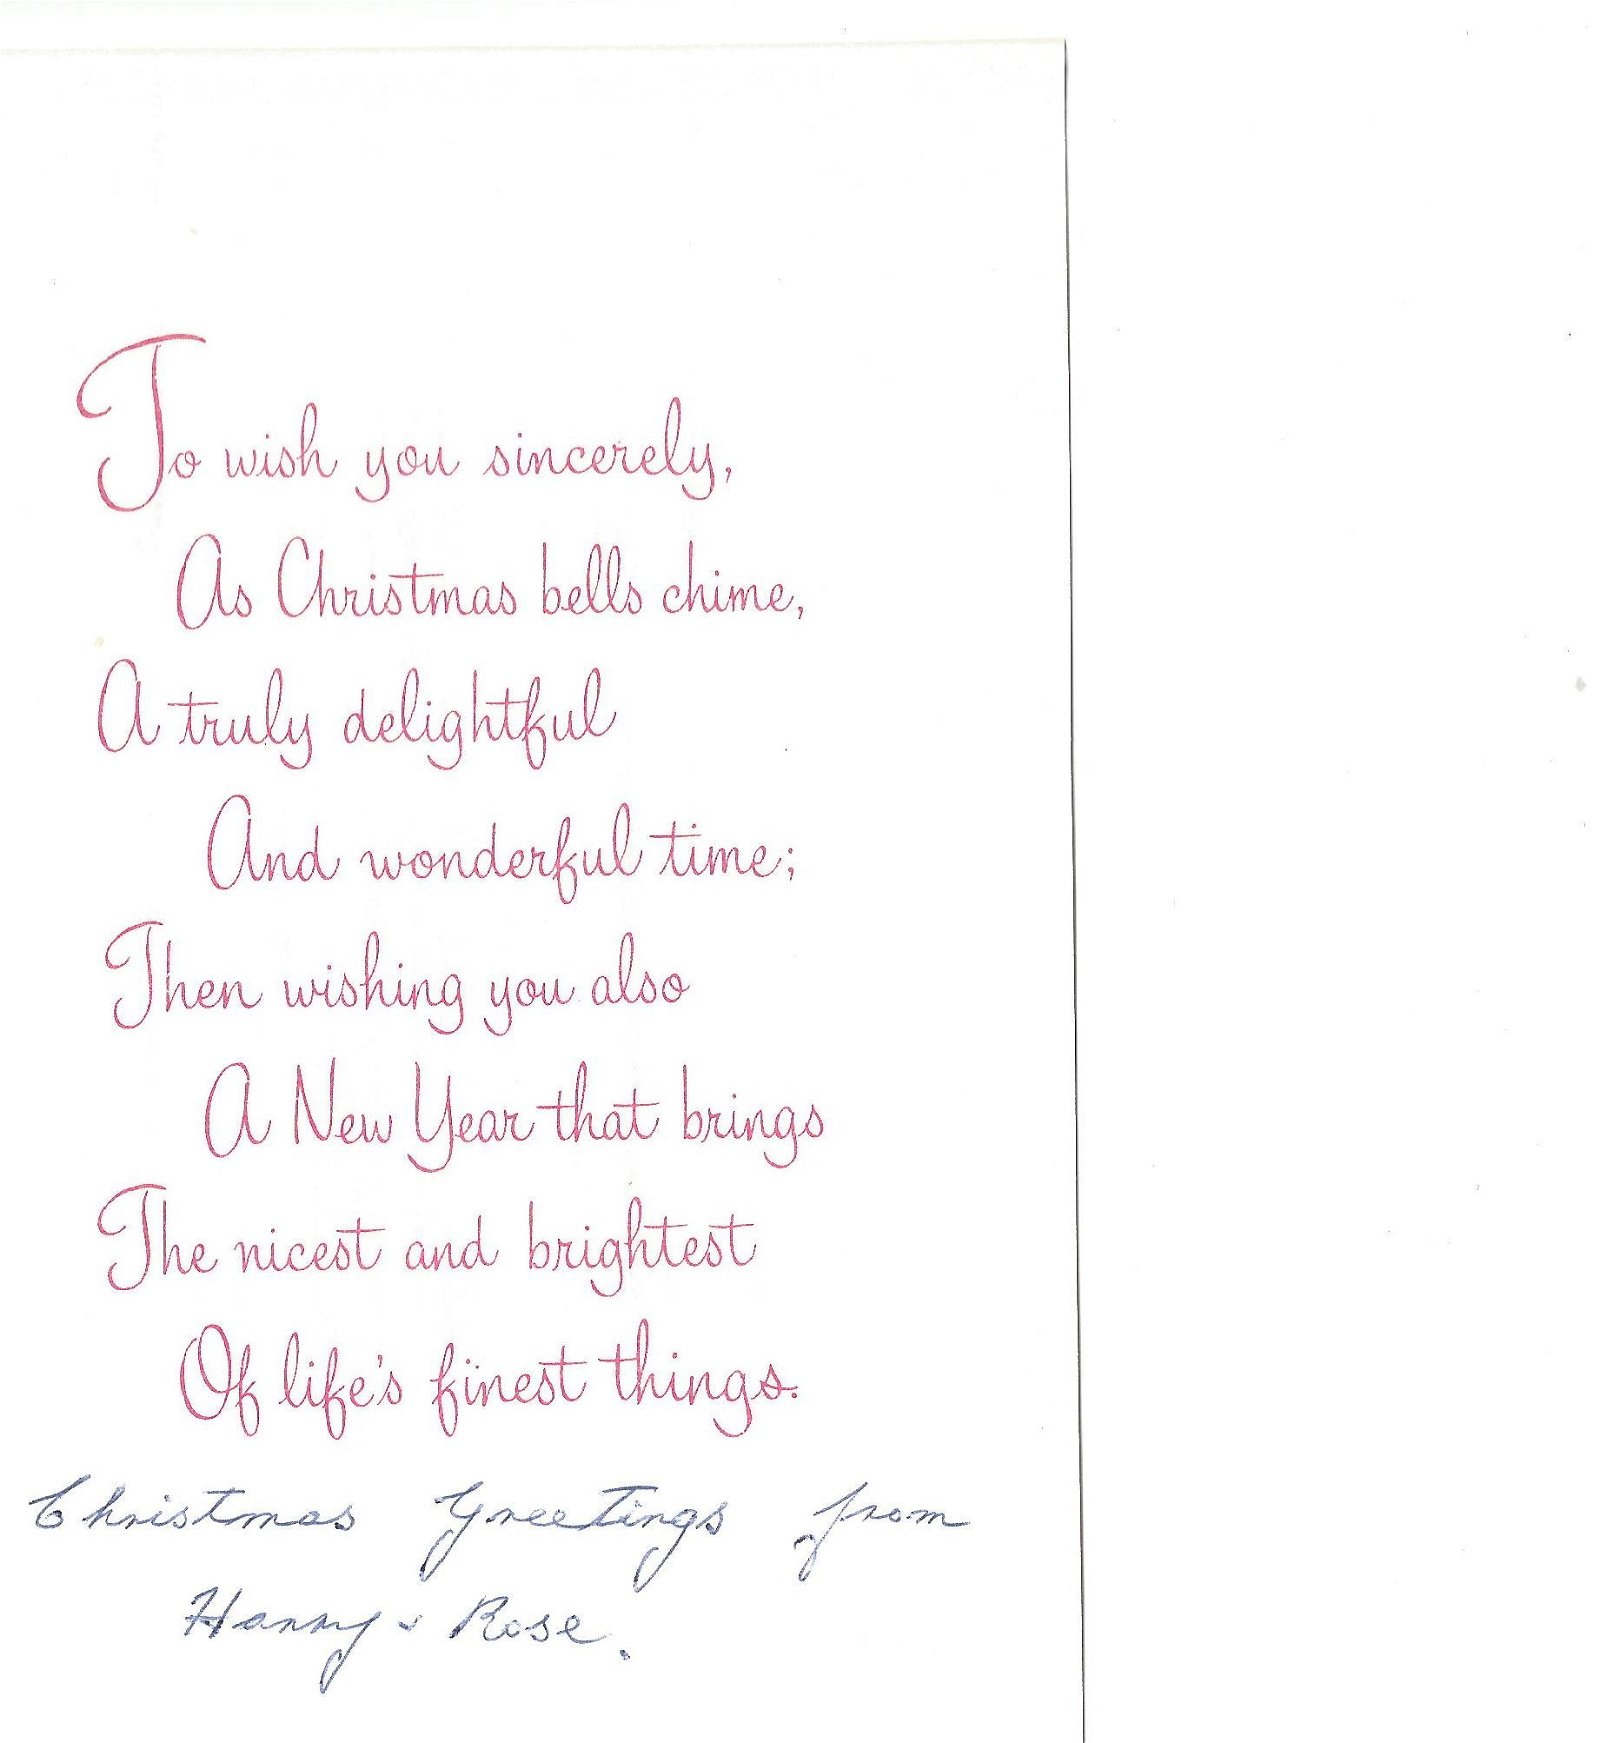 WW2 617 Sqn Harry Johnson signed Christmas card to 617